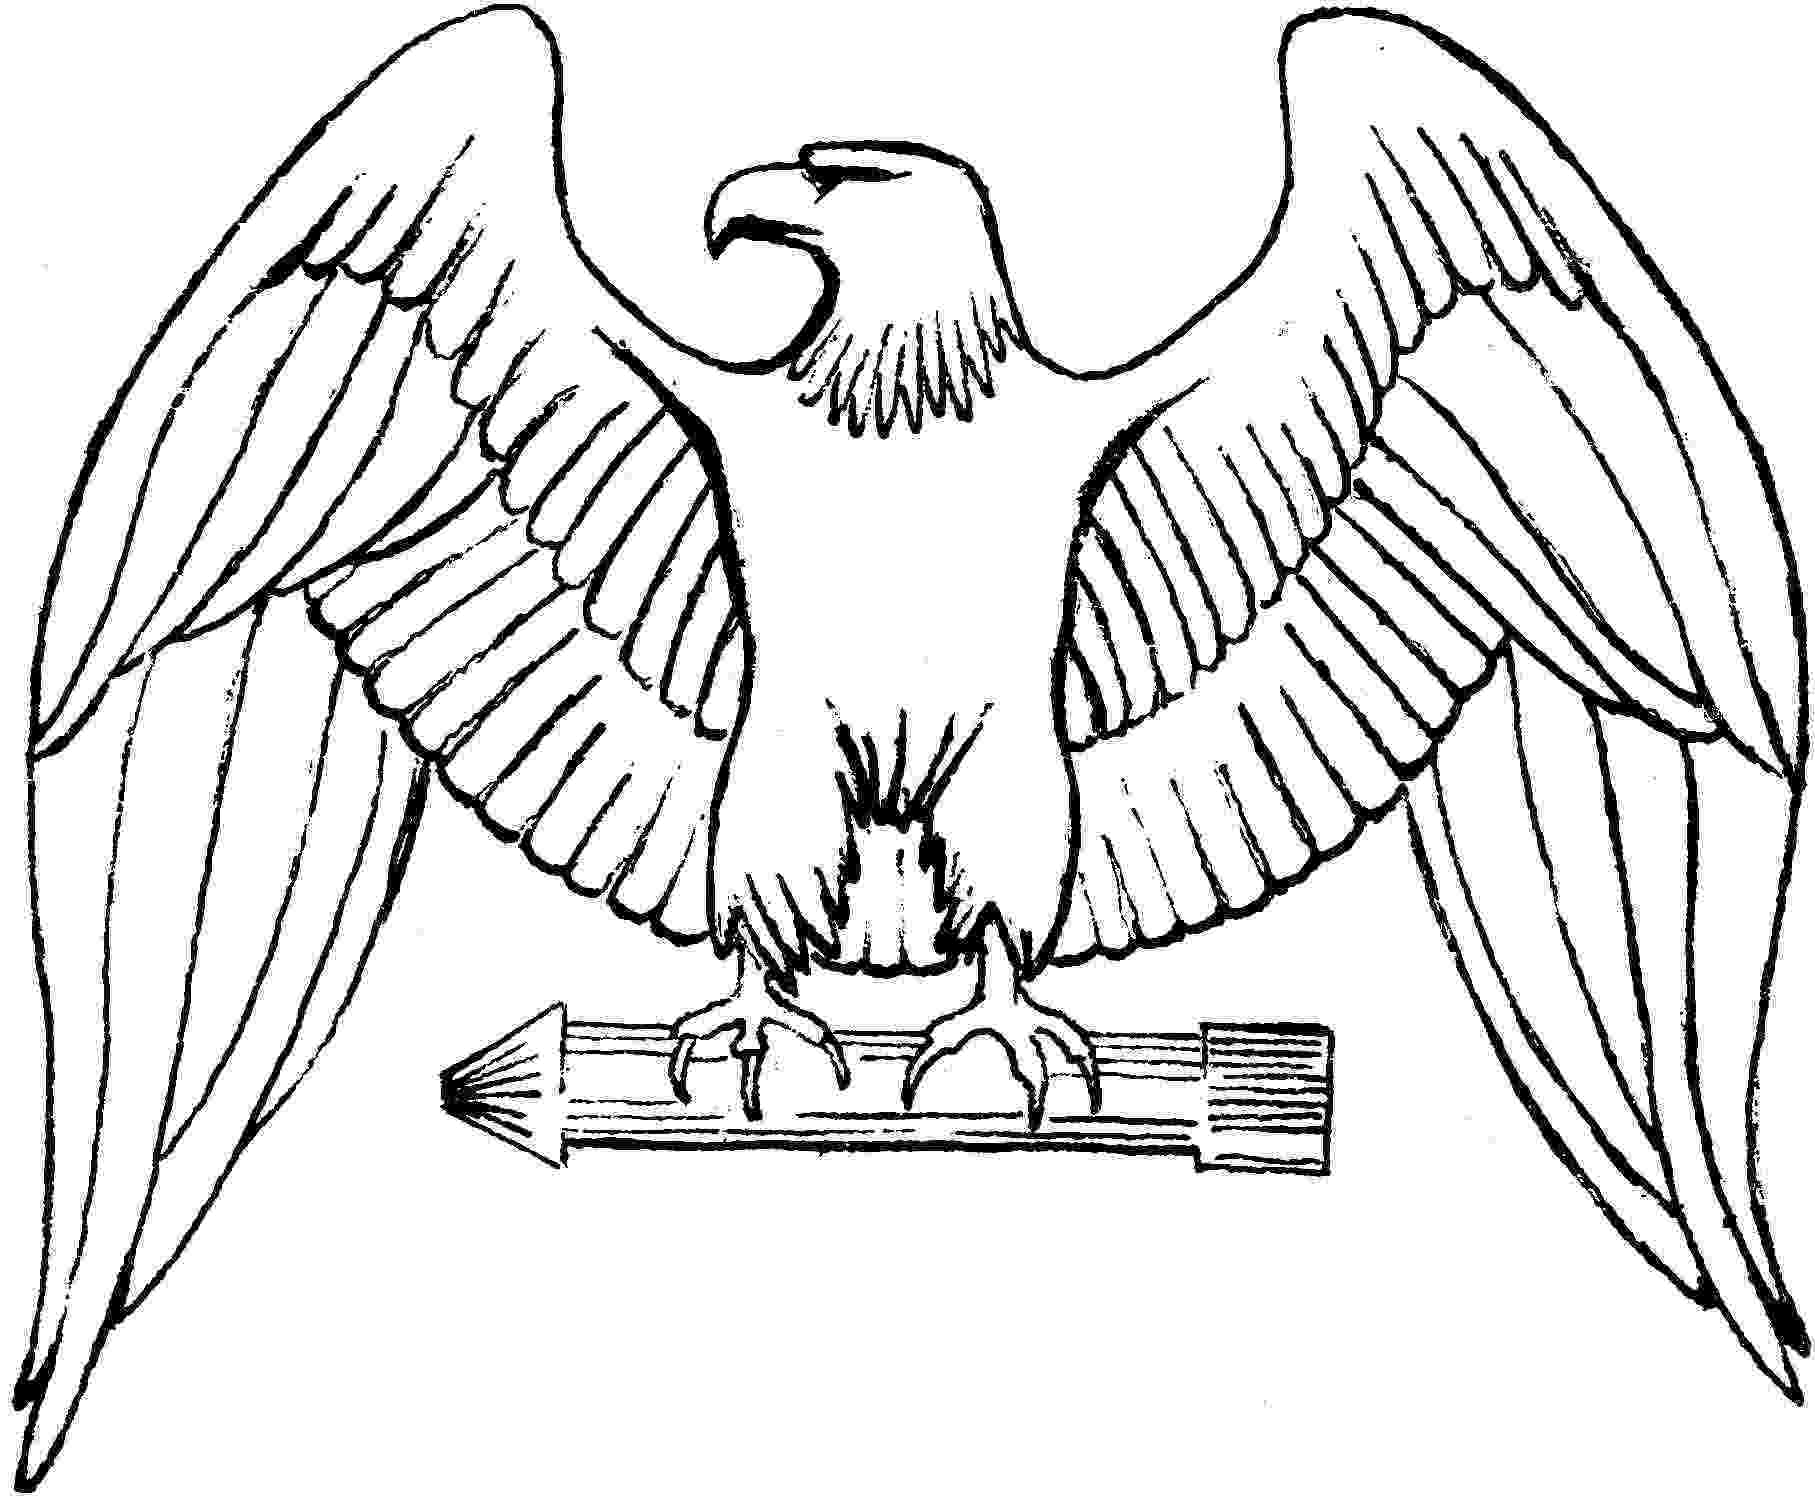 coloring eagle free printable eagle coloring pages for kids eagle coloring 1 1